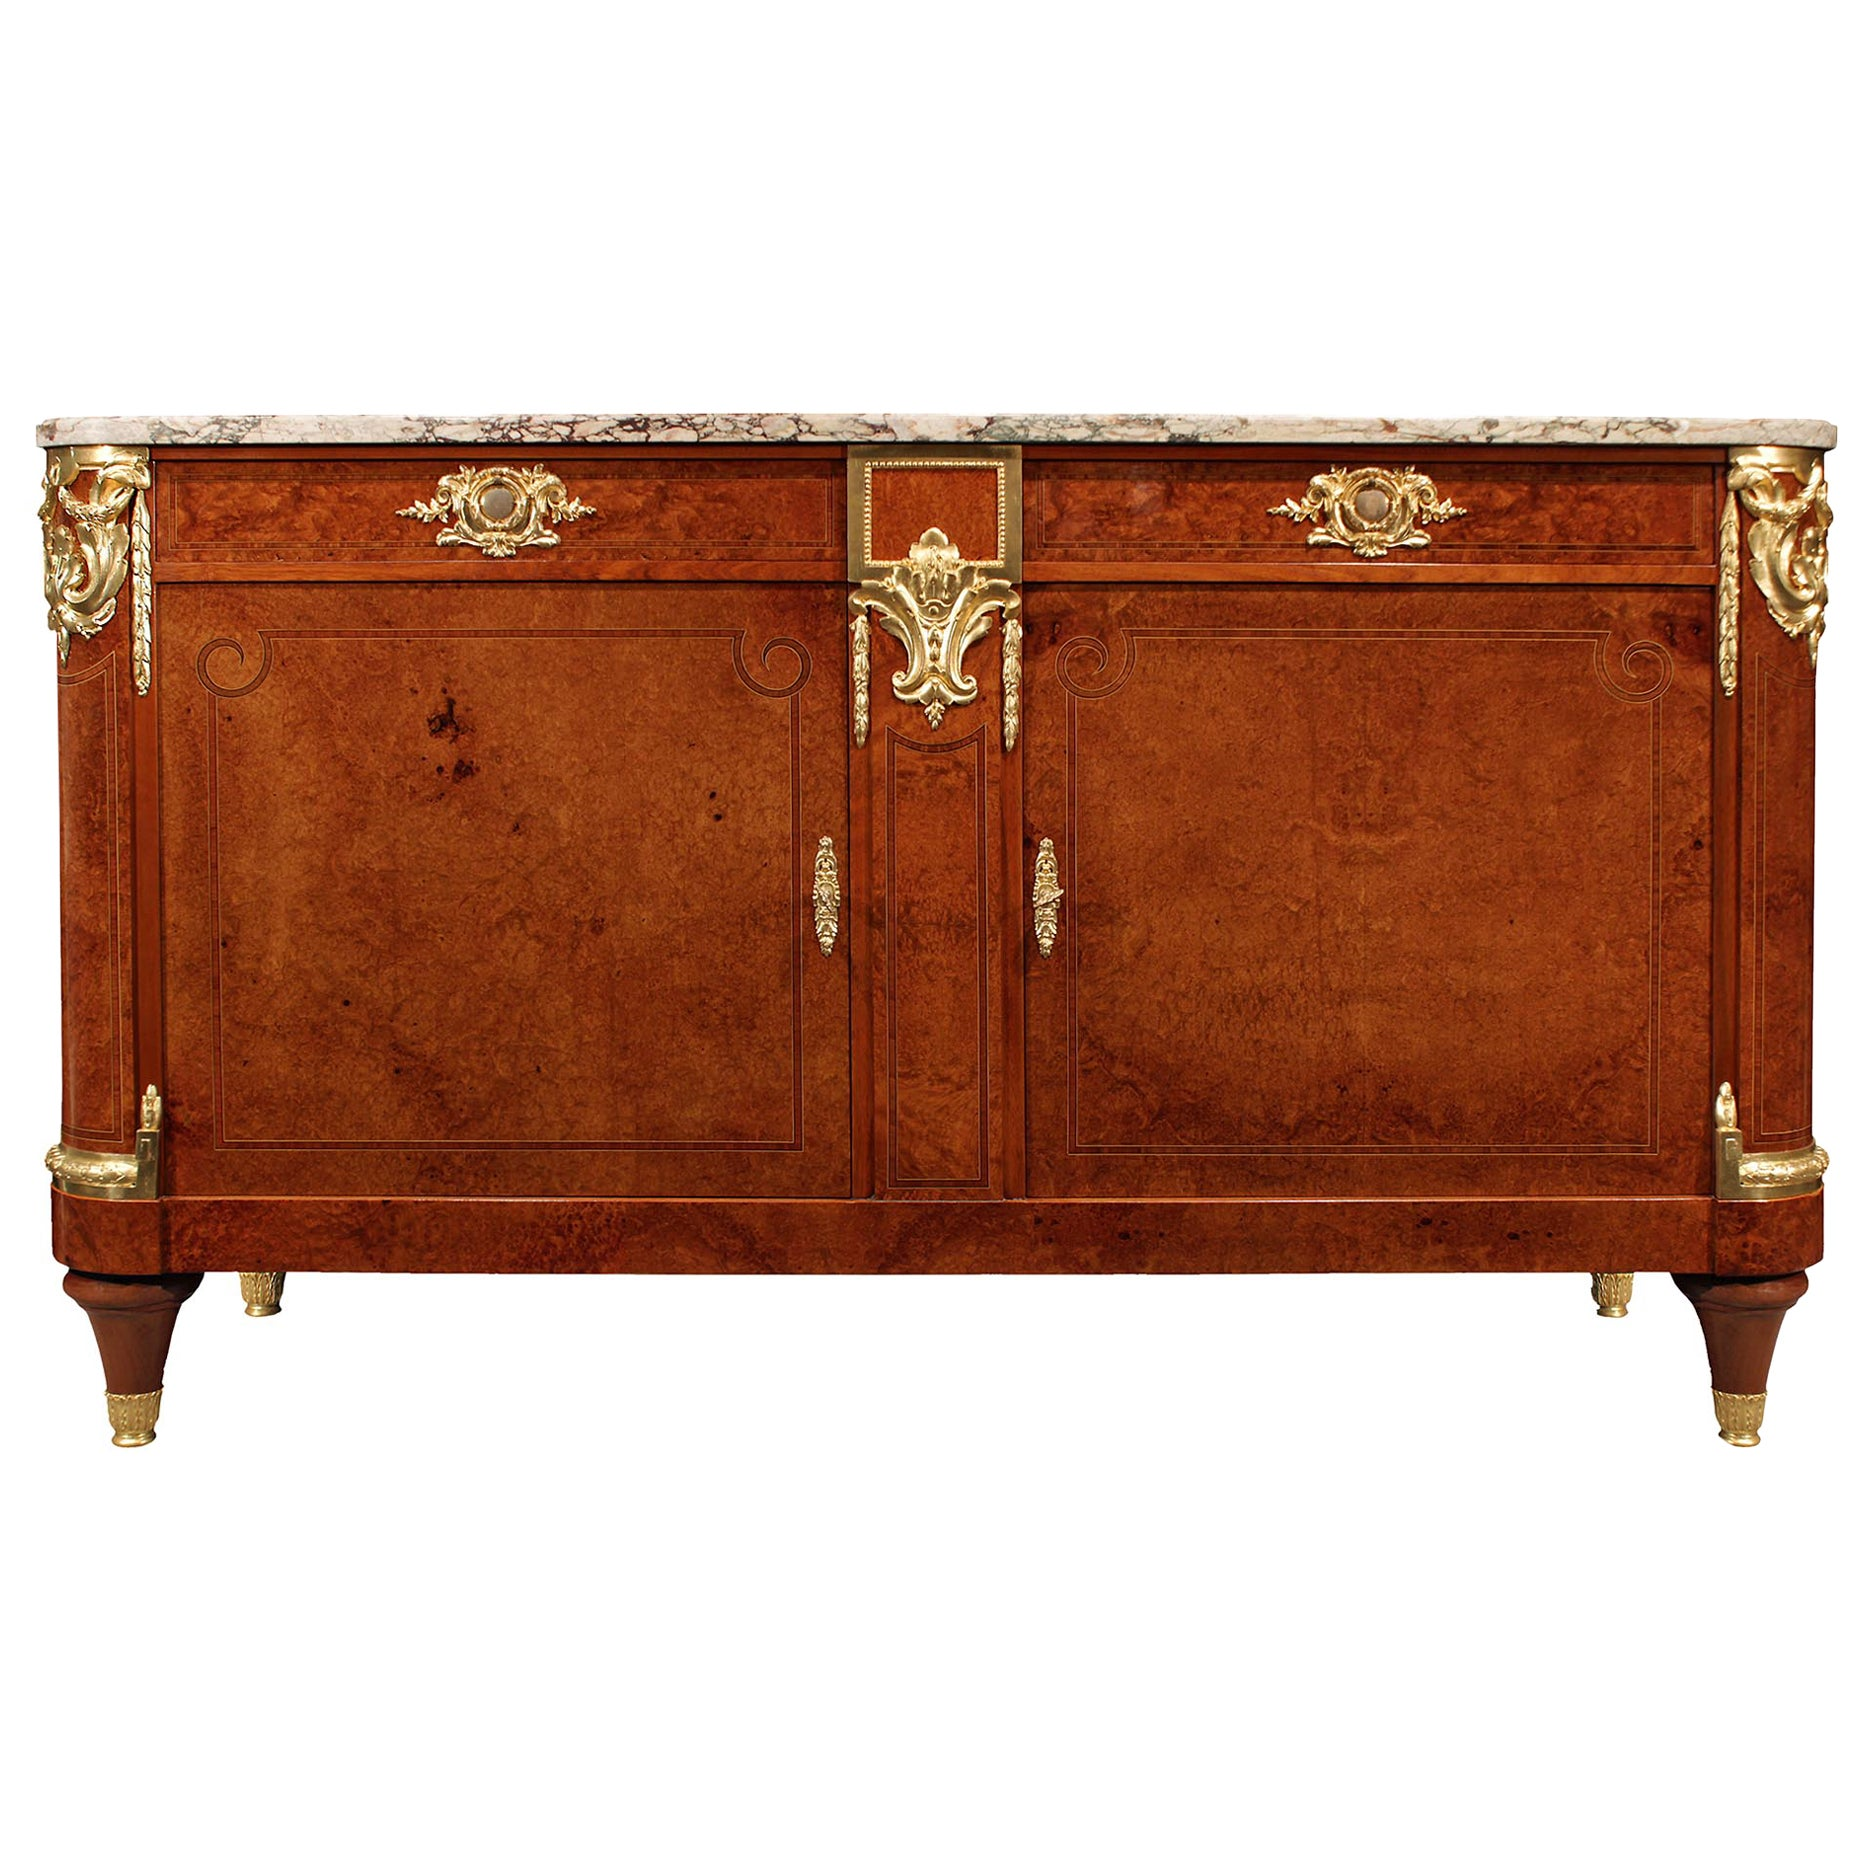 French 19th Century Empire Neoclassical Style Burl Walnut and Ormolu Buffet